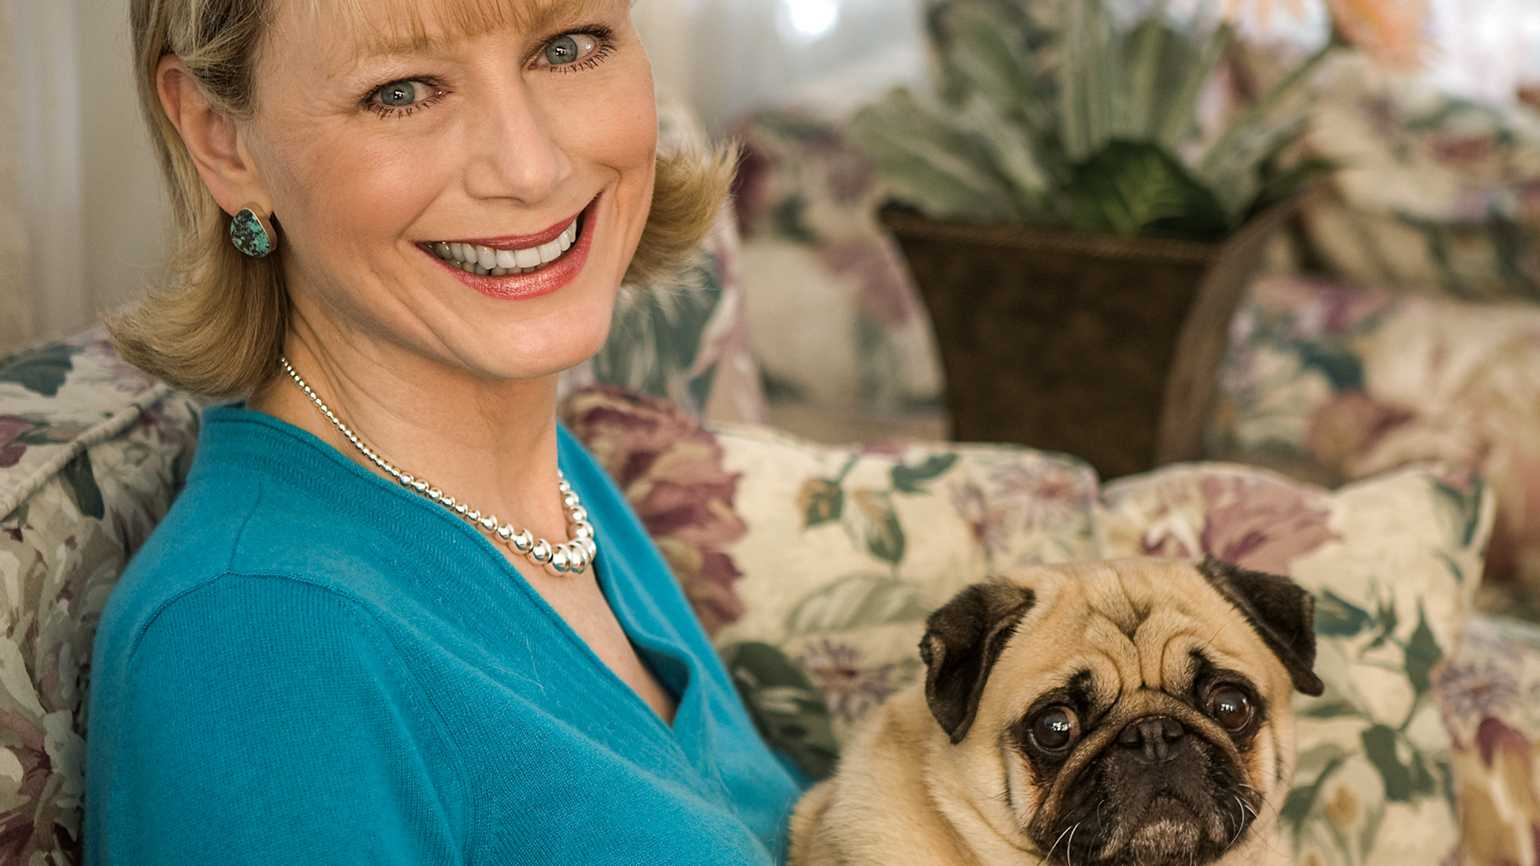 Kathryn and her pug, Max.